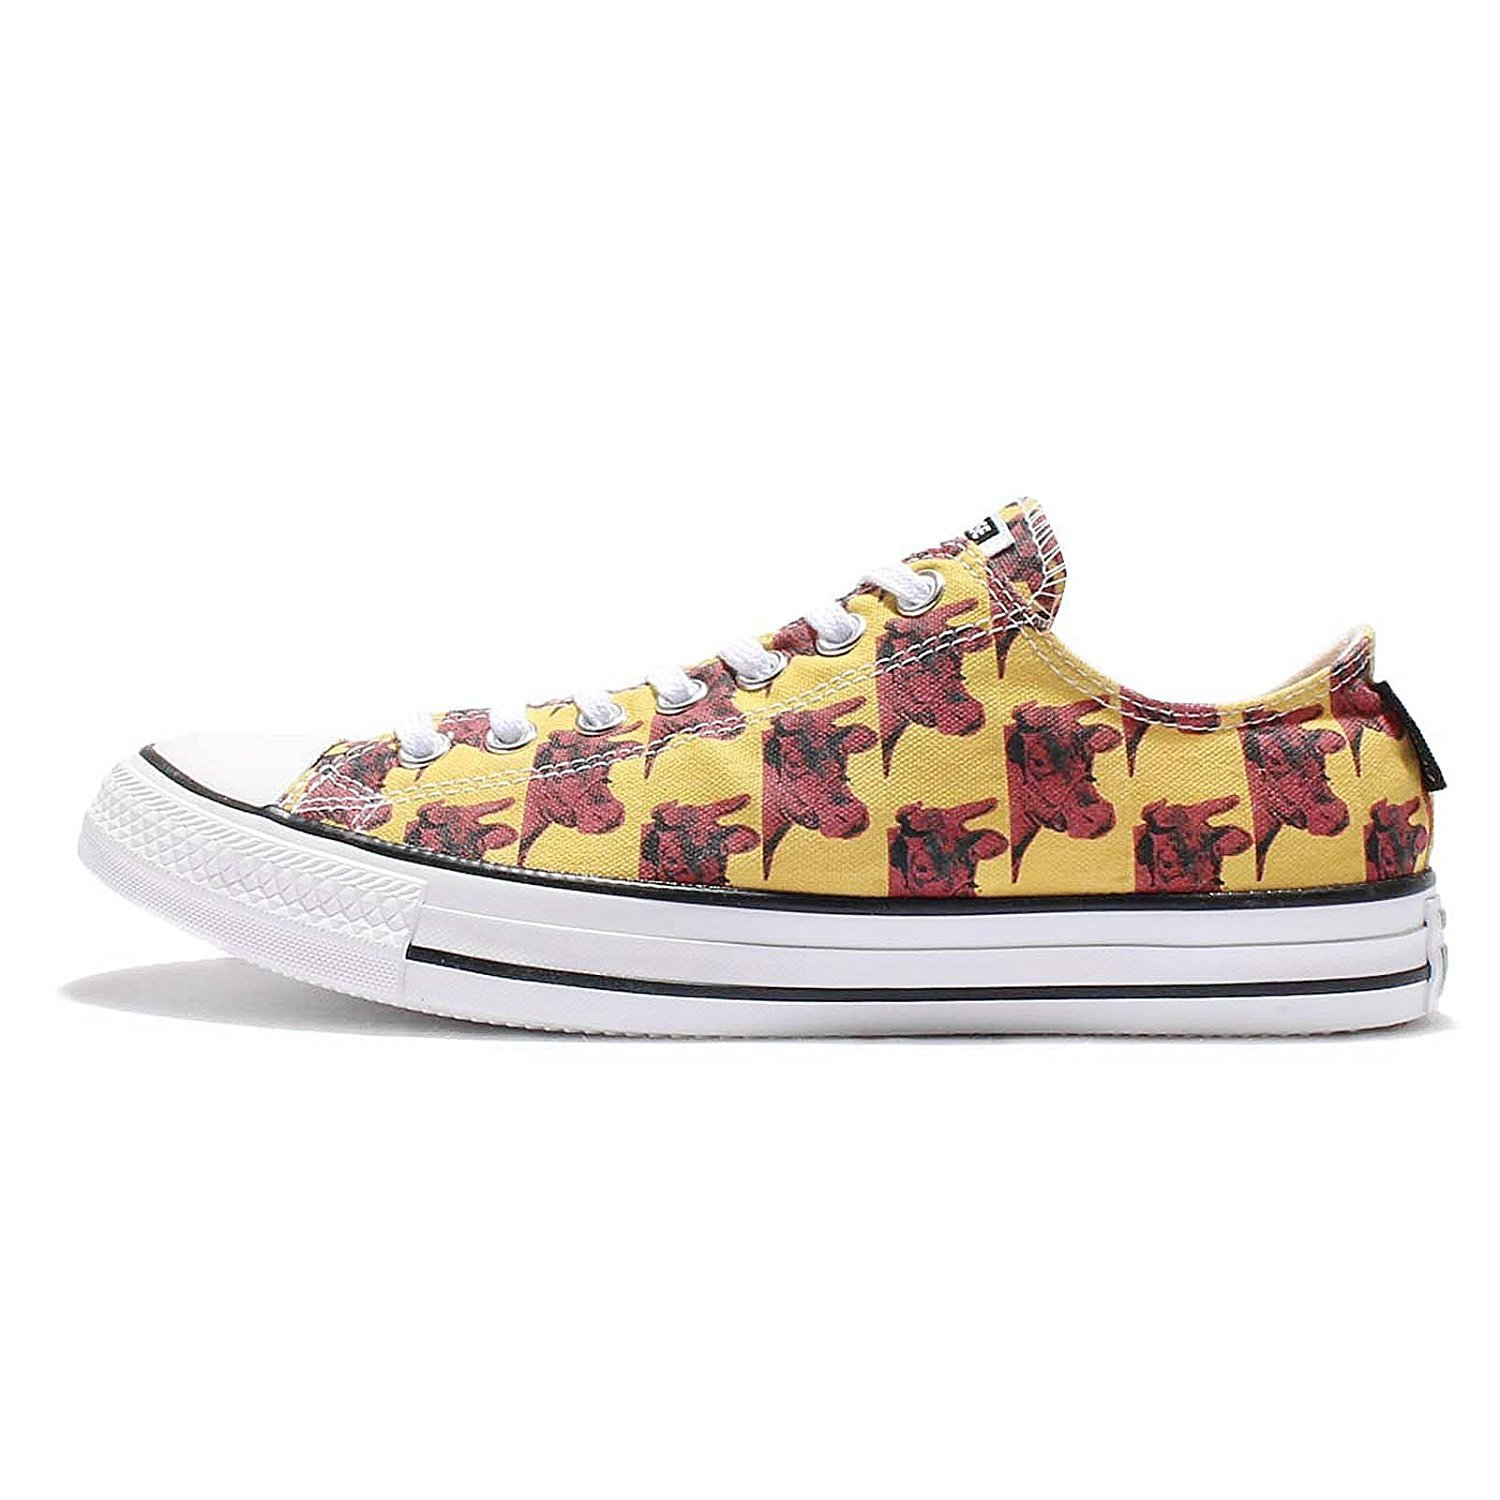 Converse Andy Warhol Banana Leather Ox Sneakers B00YFYOR42 12 M US|days ahead red/black reflective